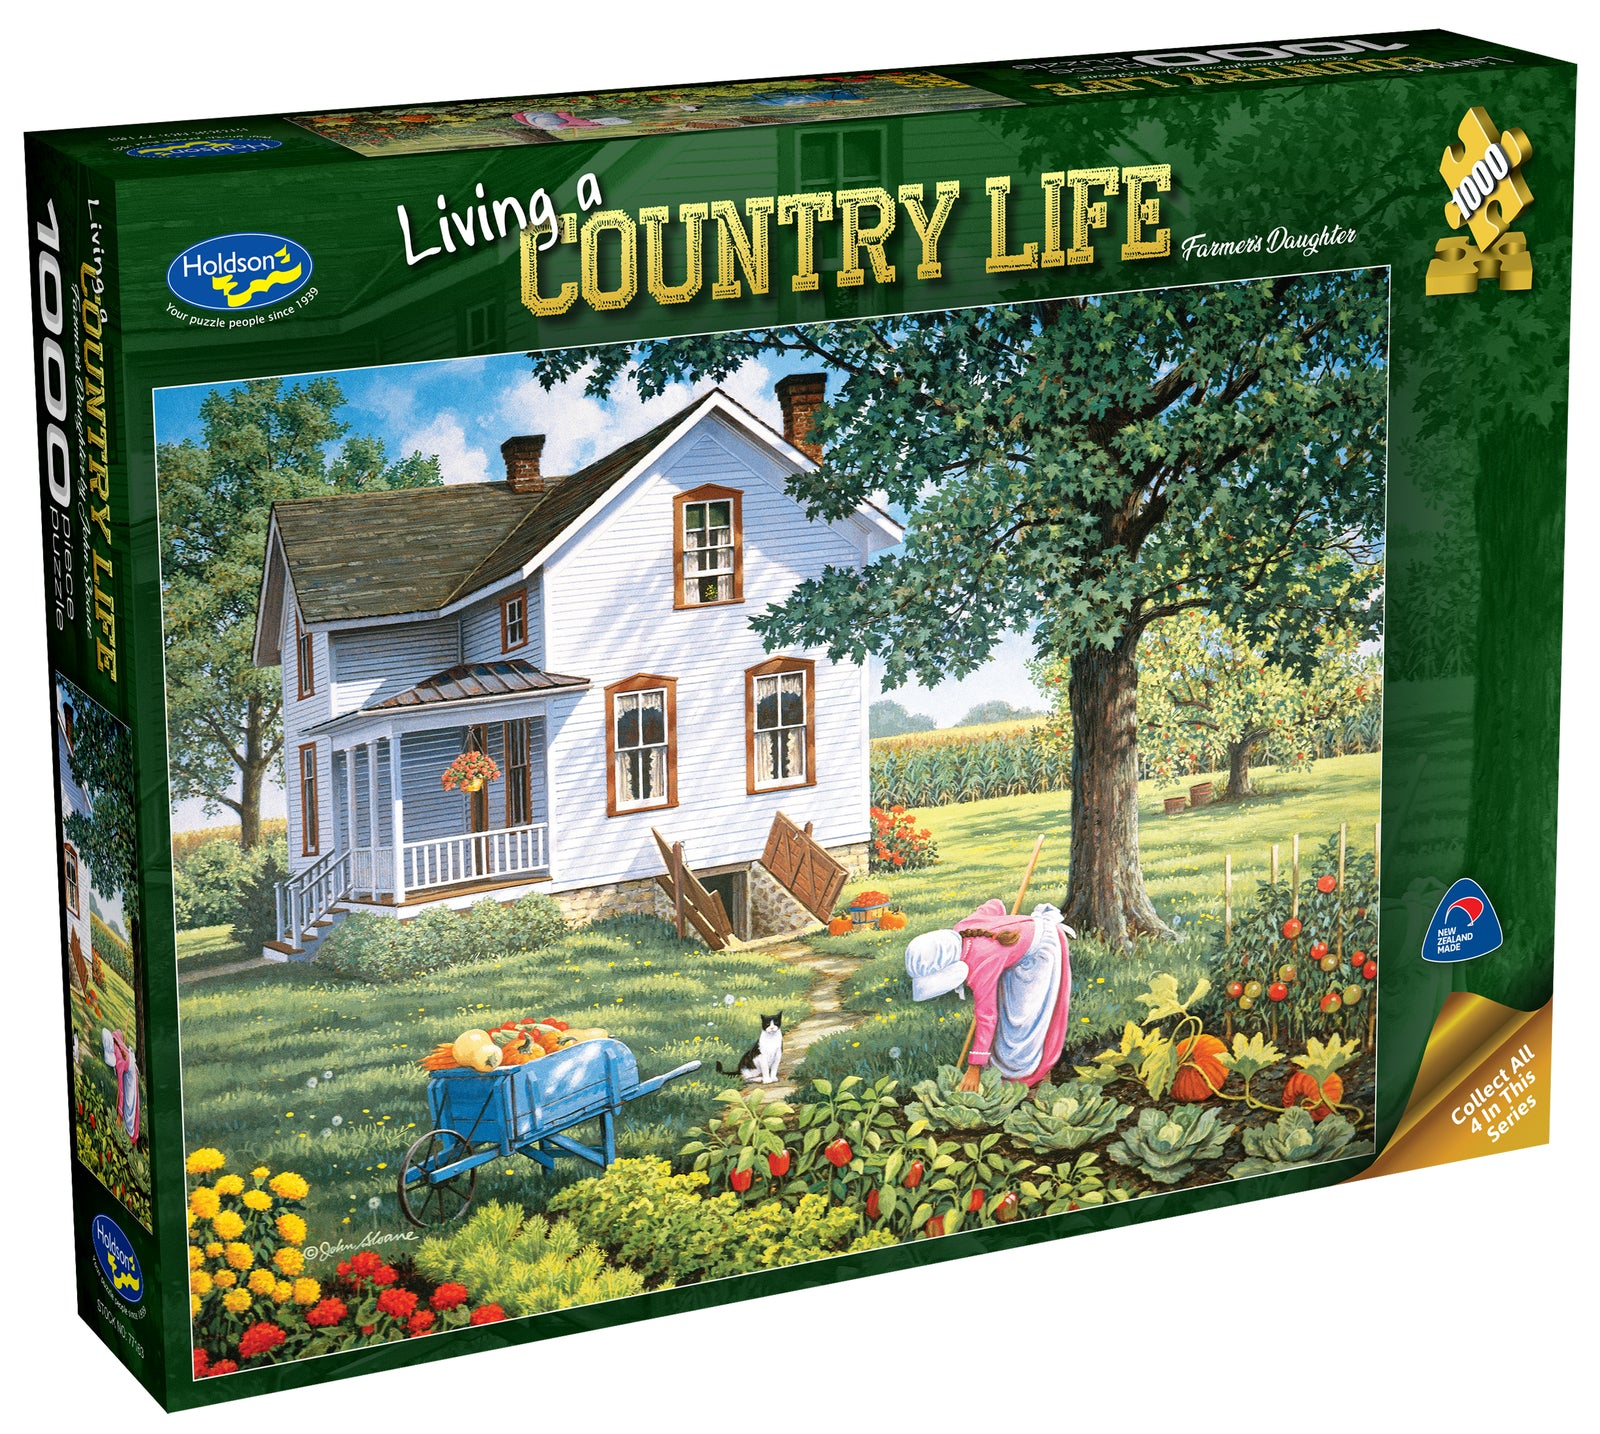 Holdson: 1000 Piece Puzzle - Living a Country Life (Farmer's Daughter)